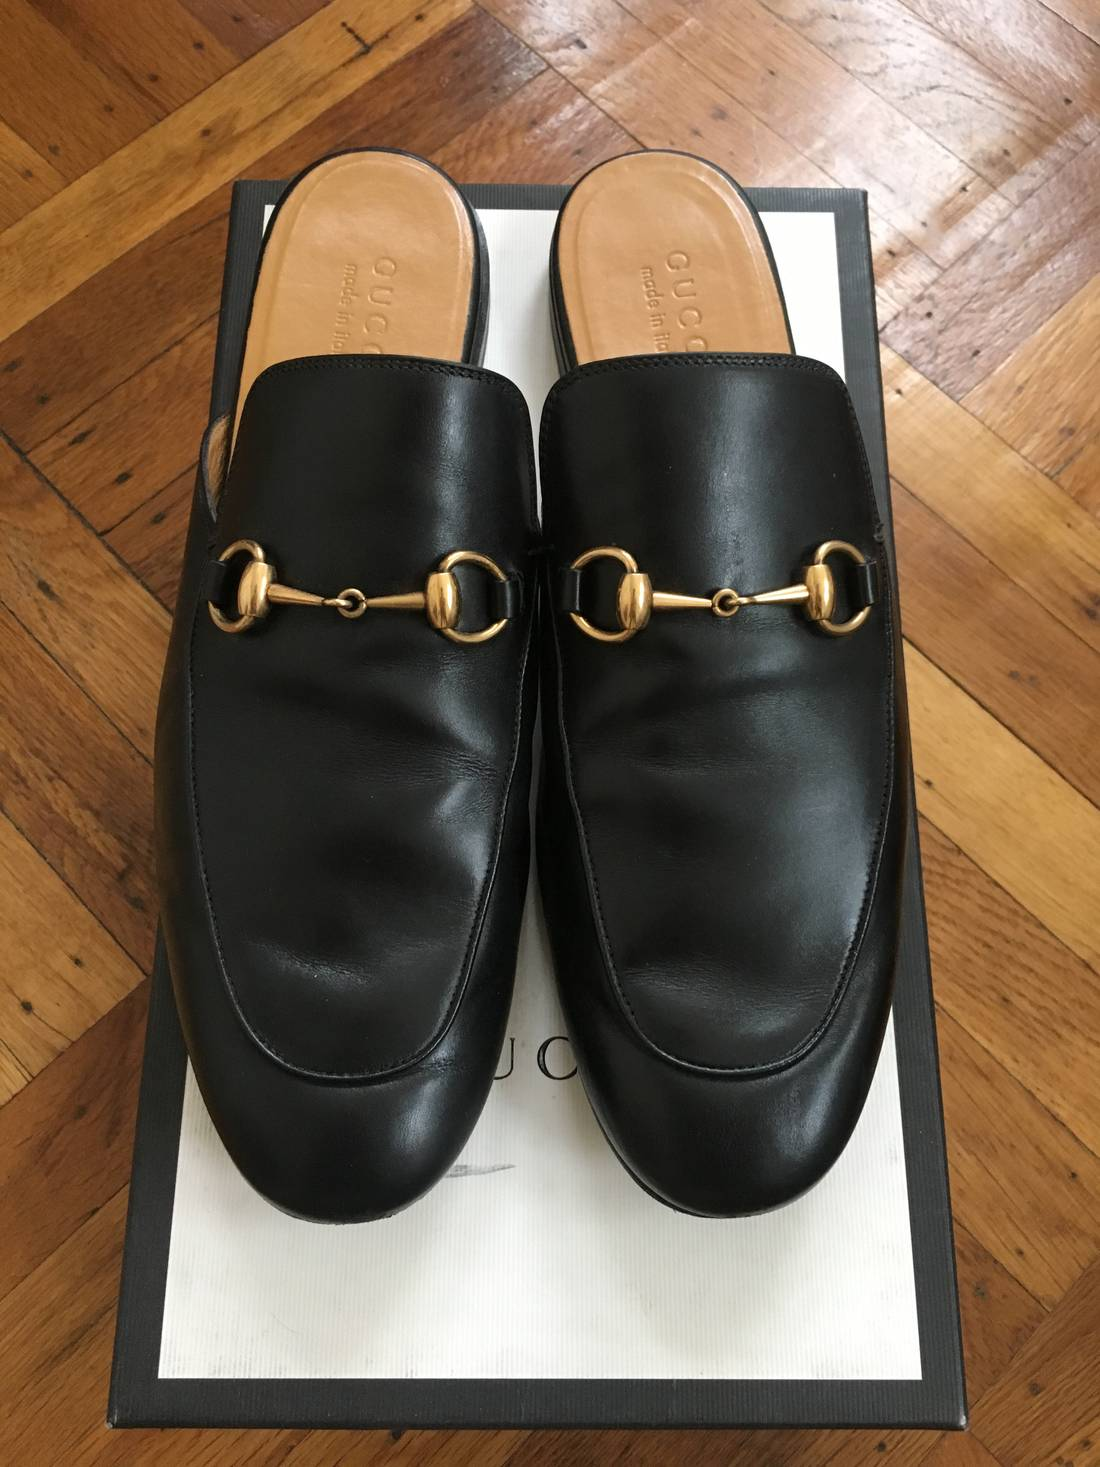 Gucci Leather Horsebit King Slippers v0Eo80